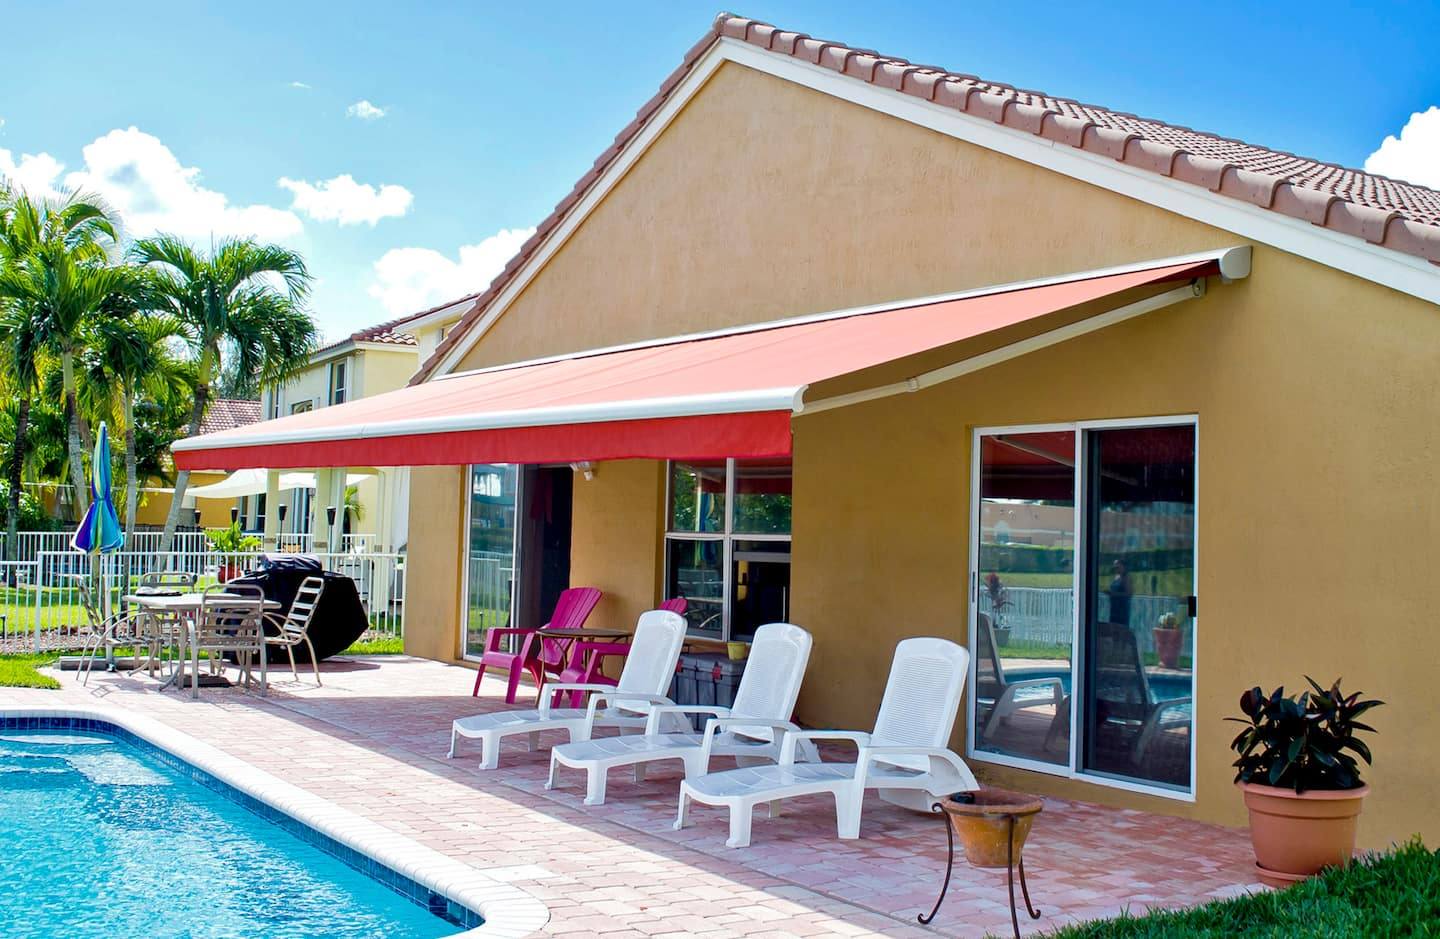 How Much Do Retractable Awnings Cost